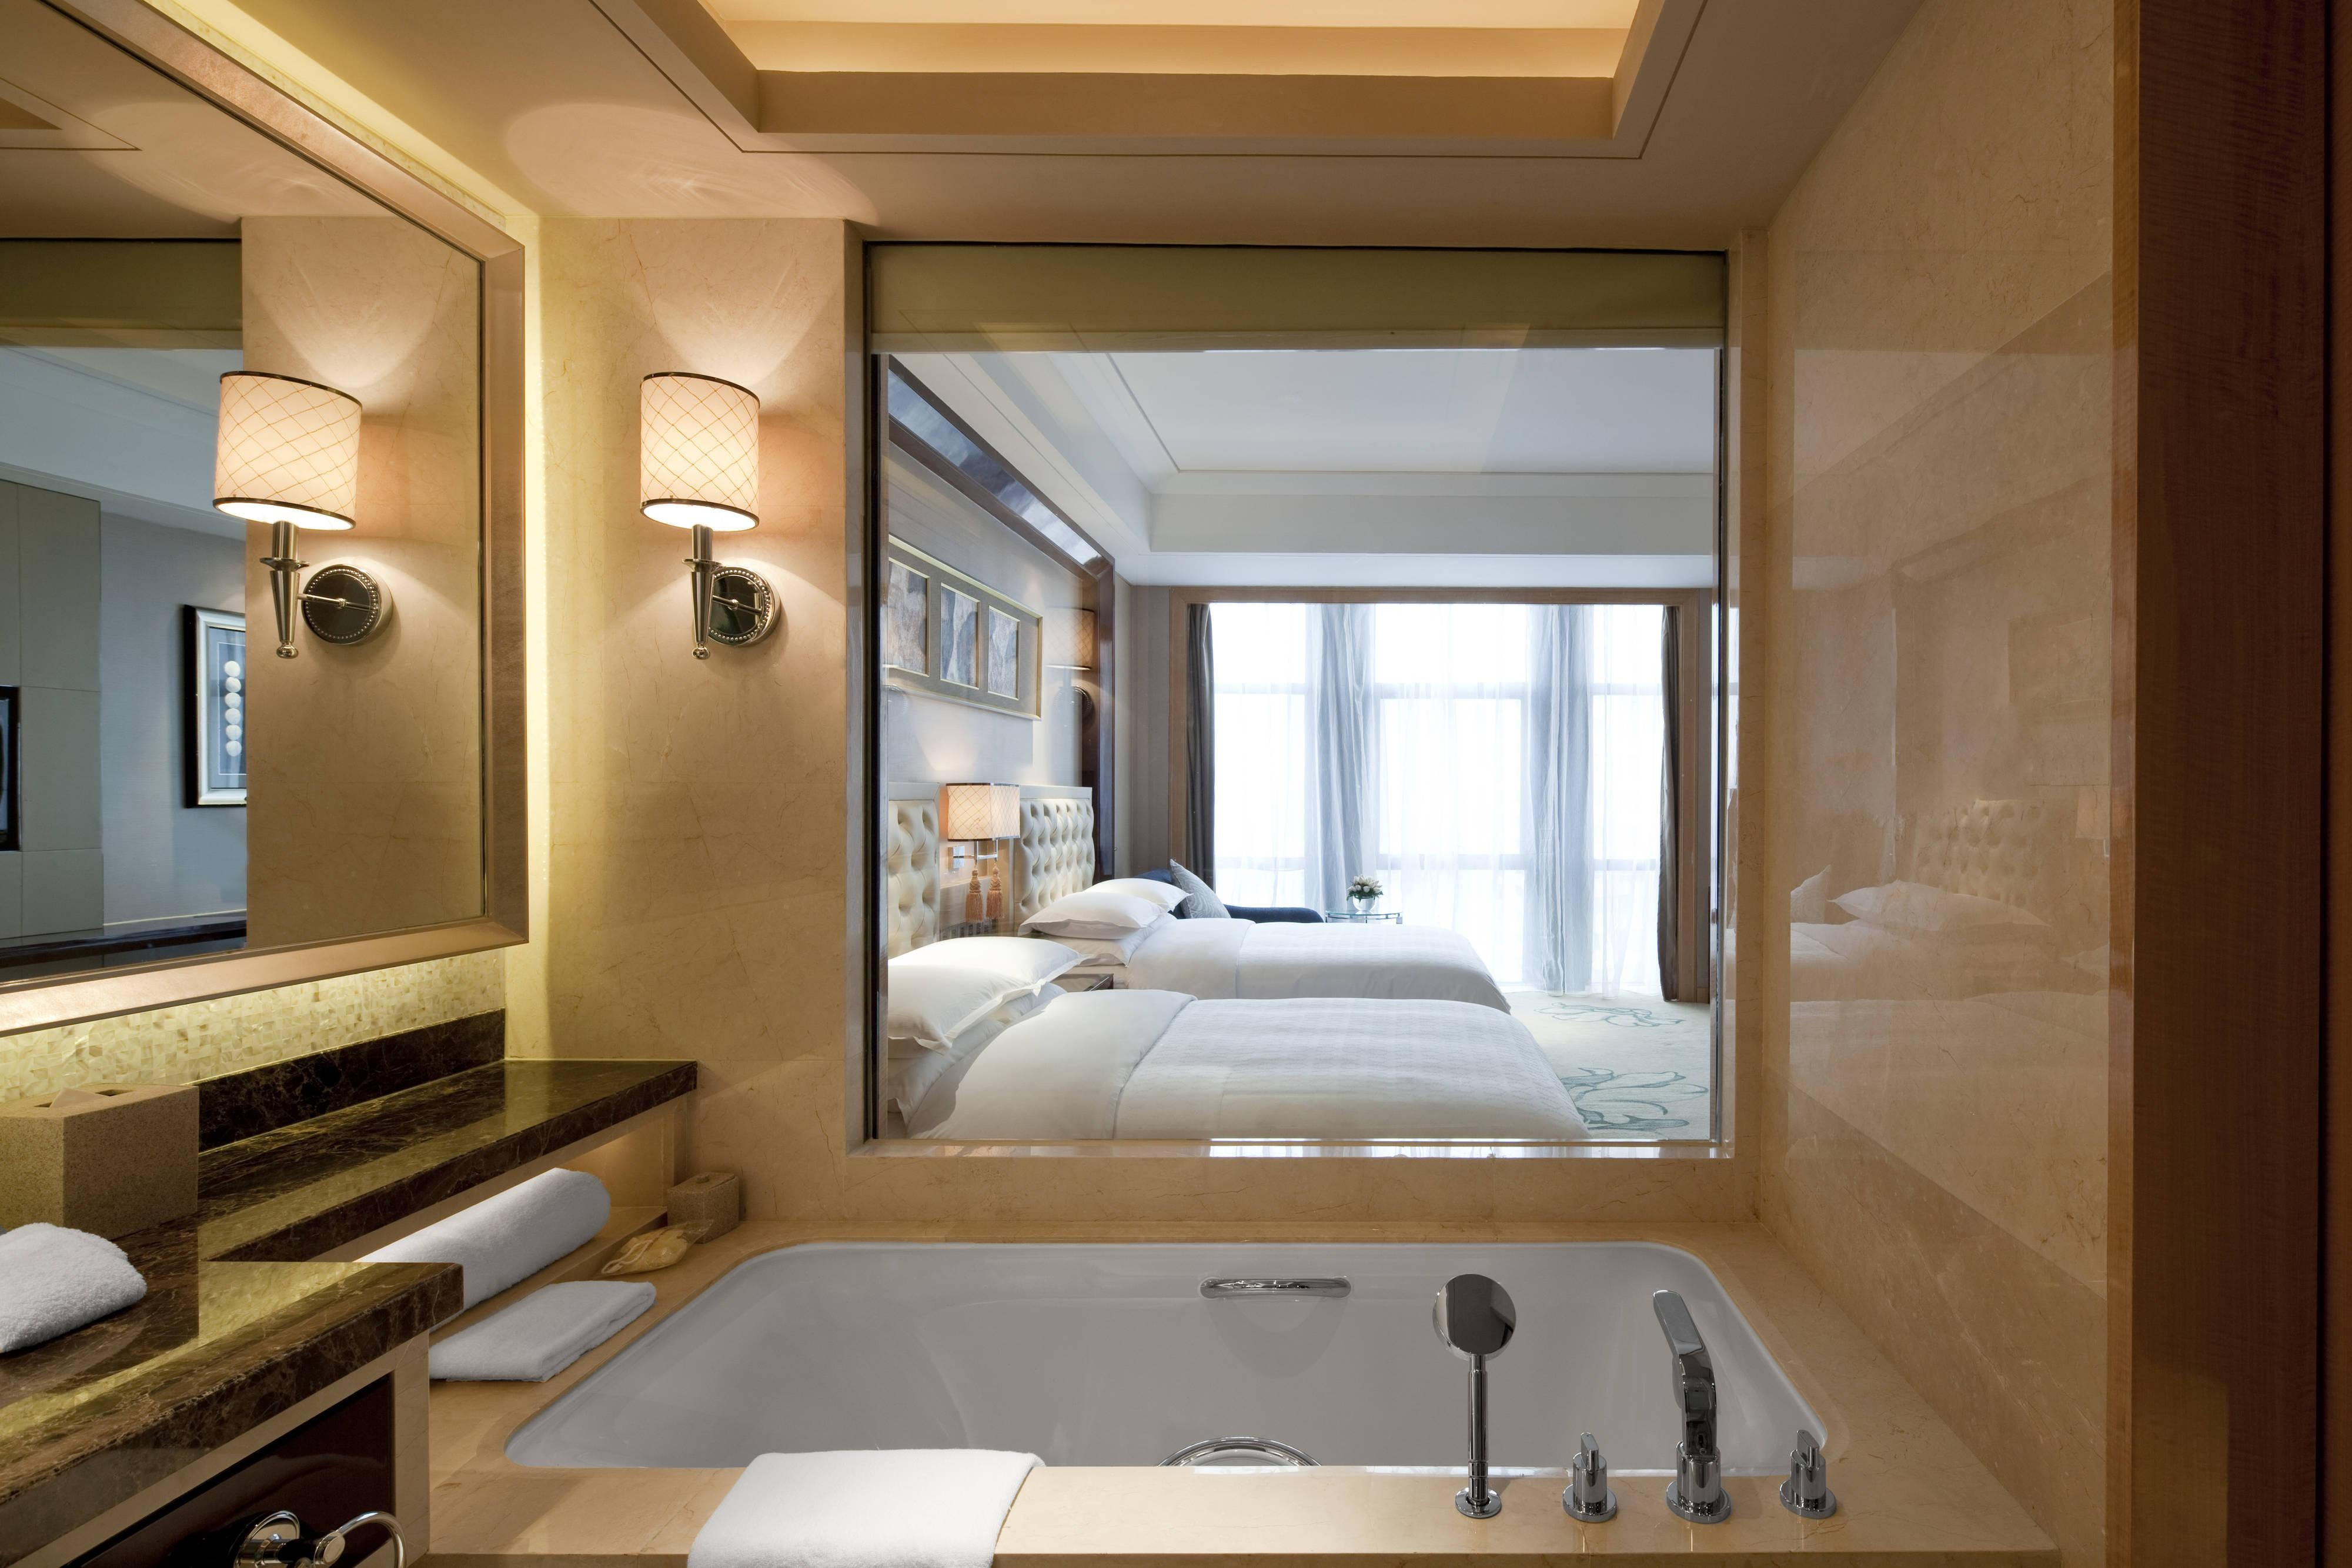 Deluxe Bathroom and Guest Room